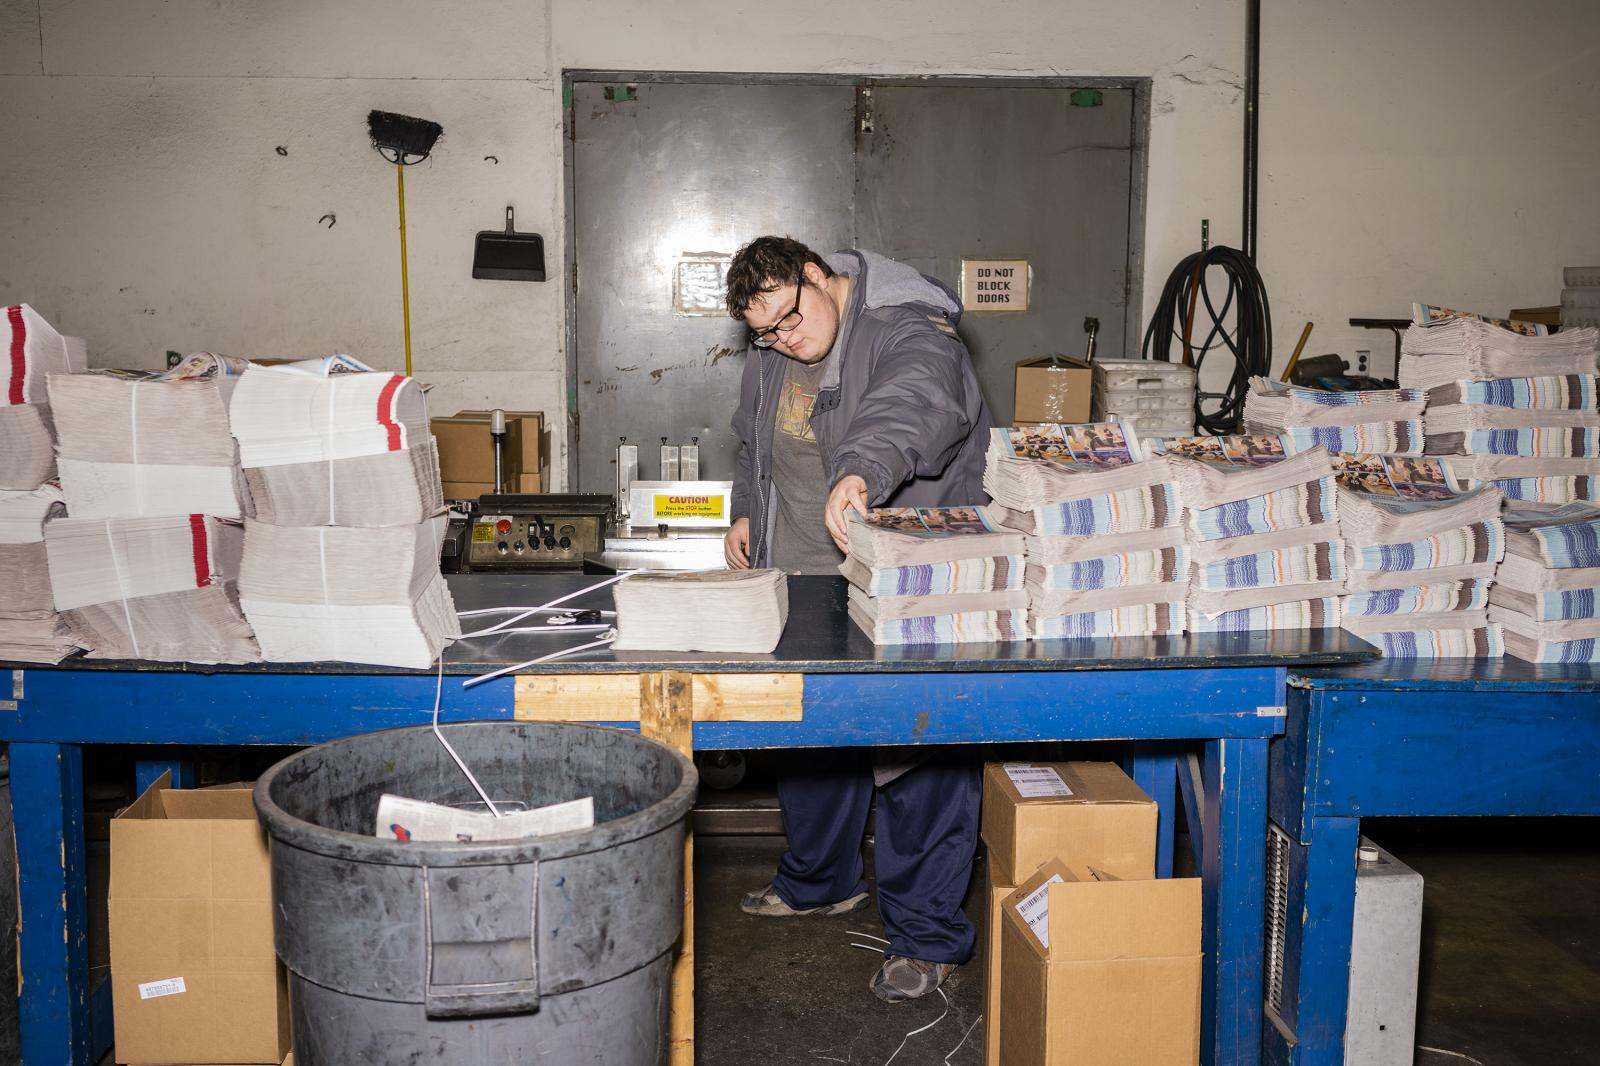 A press worker looks over papers in the printing room of the Creston News Advertiser in Creston, Iowa on Friday, December 13, 2019. KC McGinnis for La Croix L'Hebdo